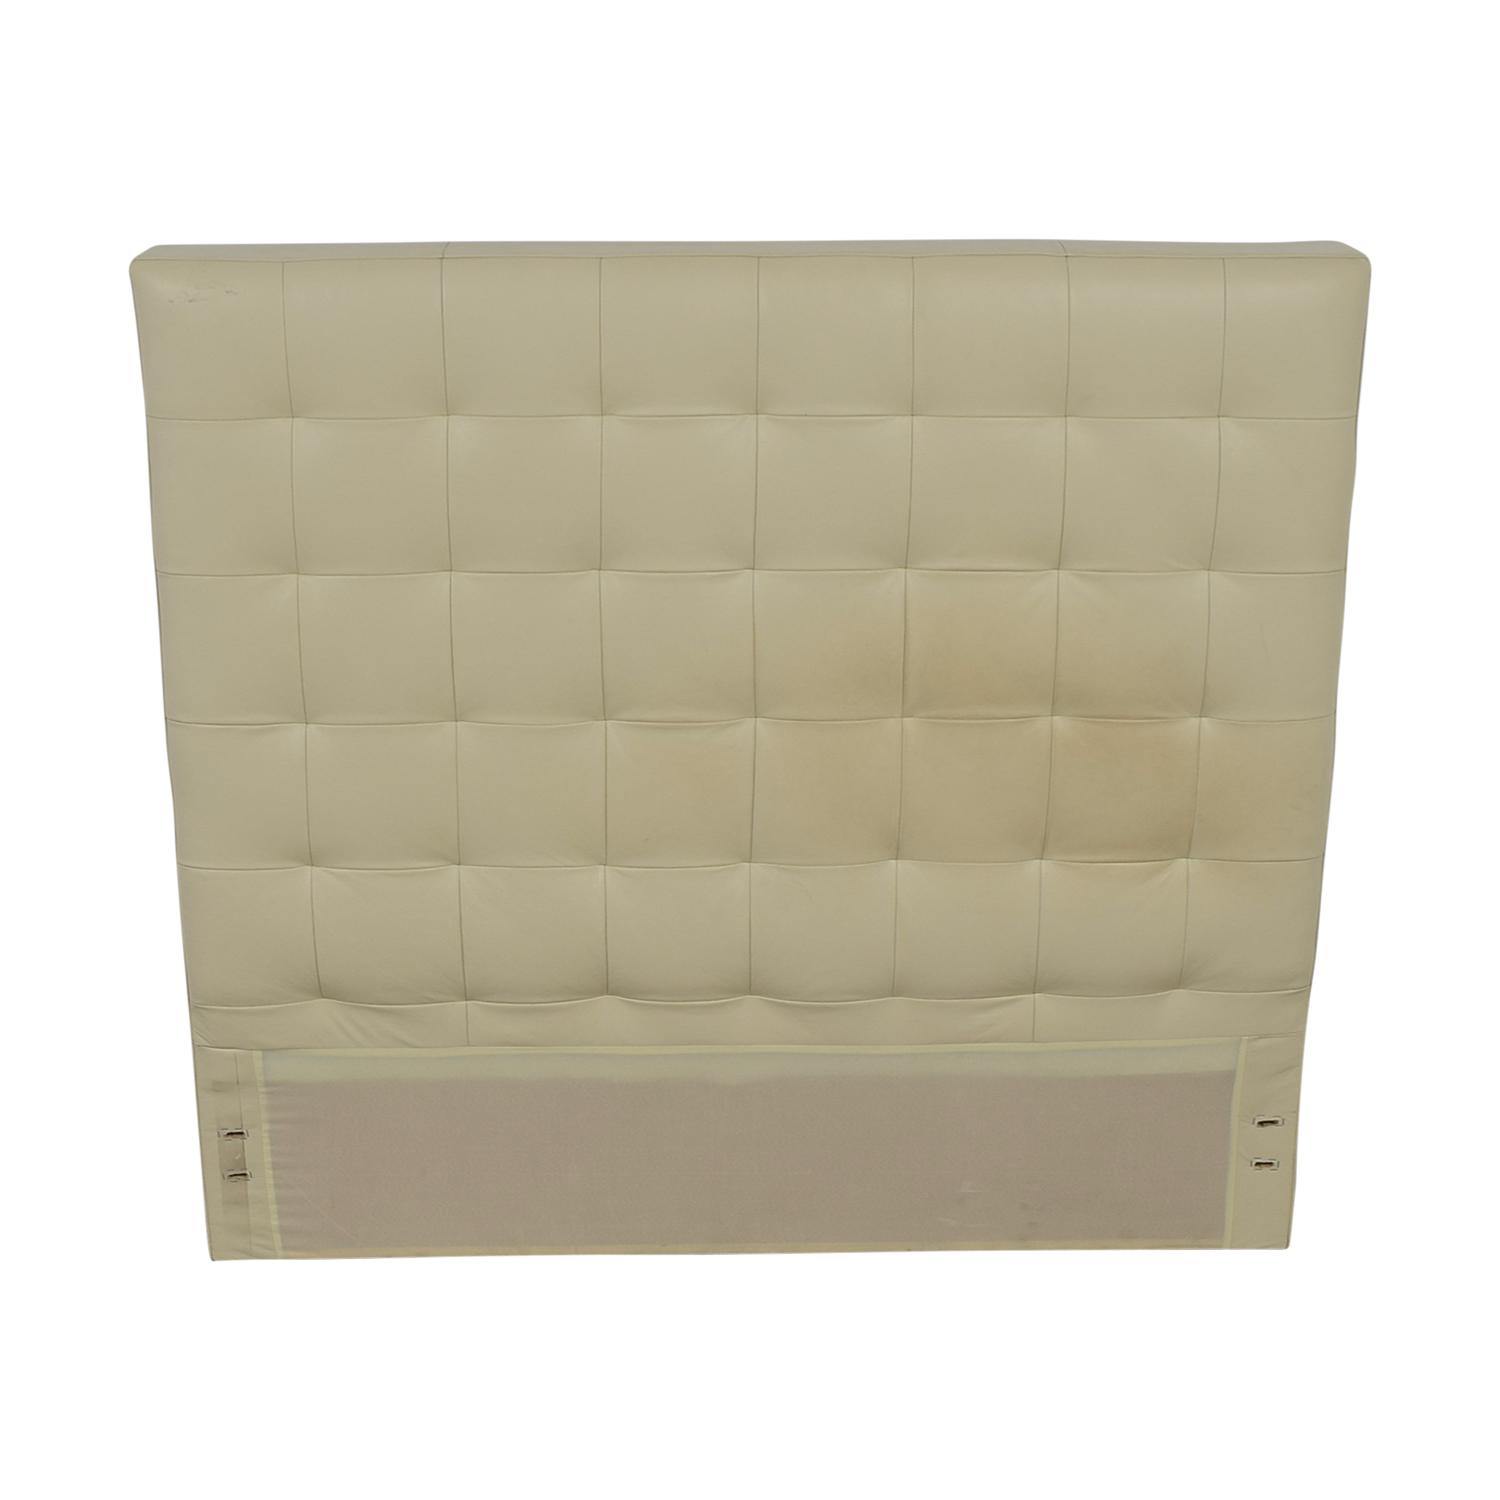 West Elm West Elm White Leather Tufted Queen Headboard nyc